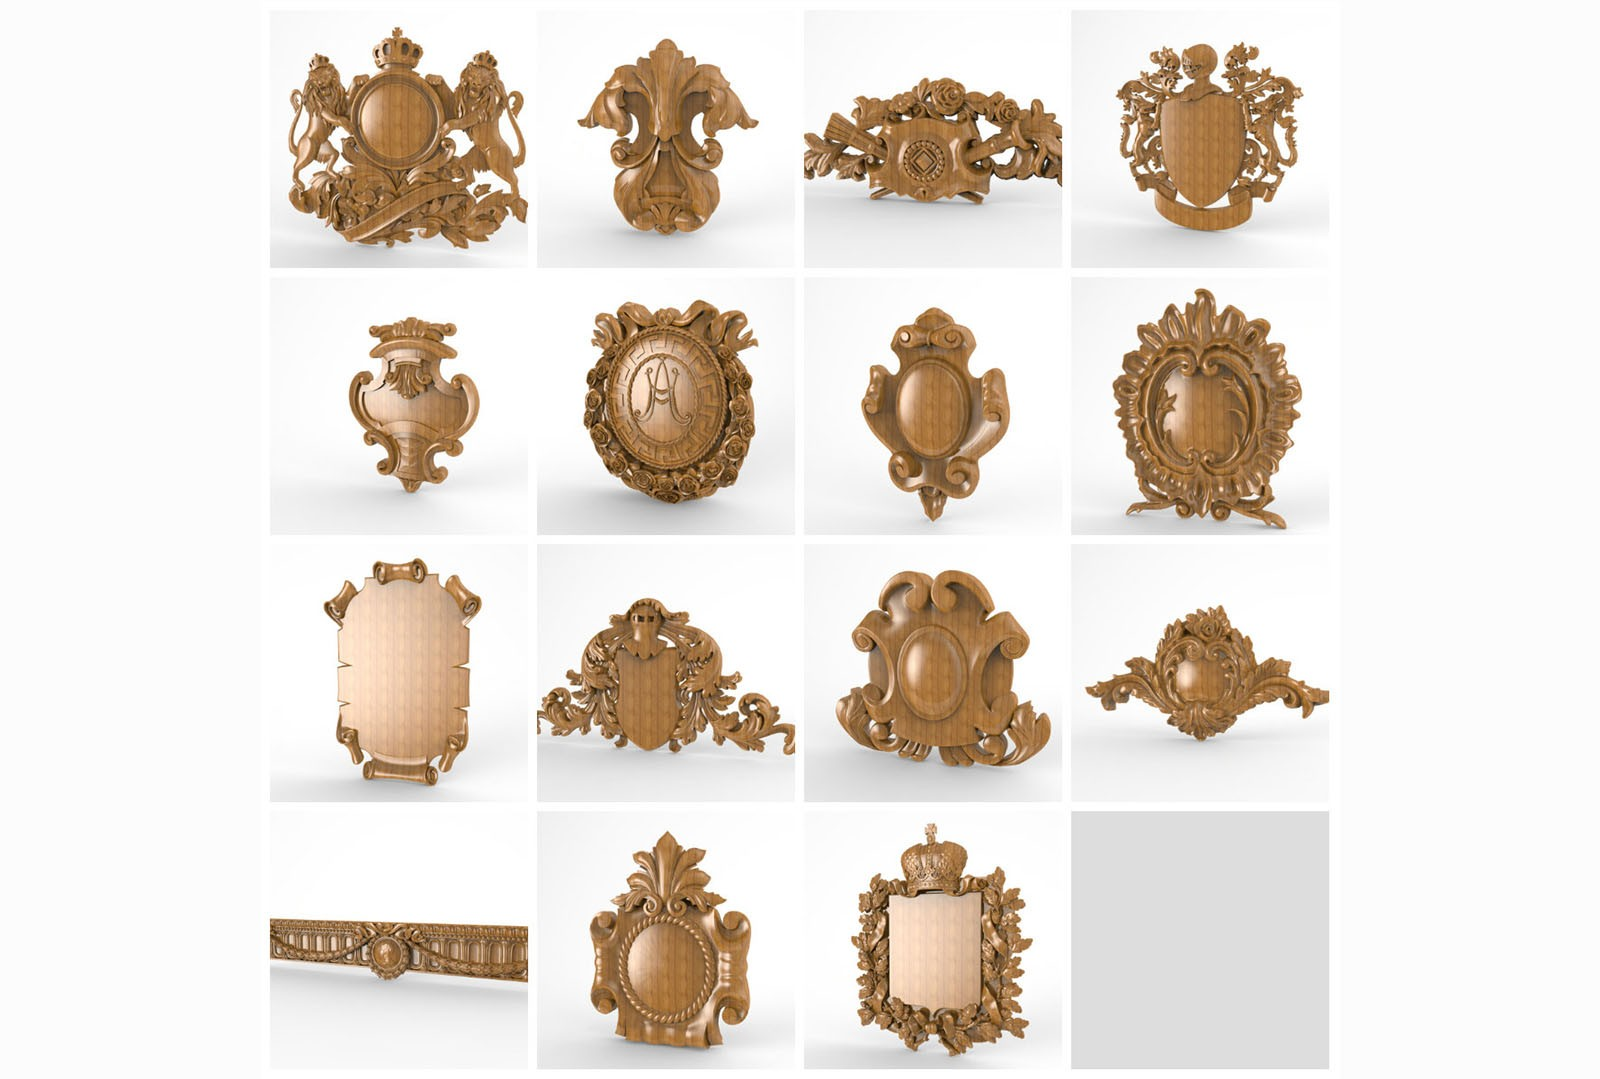 CNC G009 15PC cartouche collection 3D STL Model